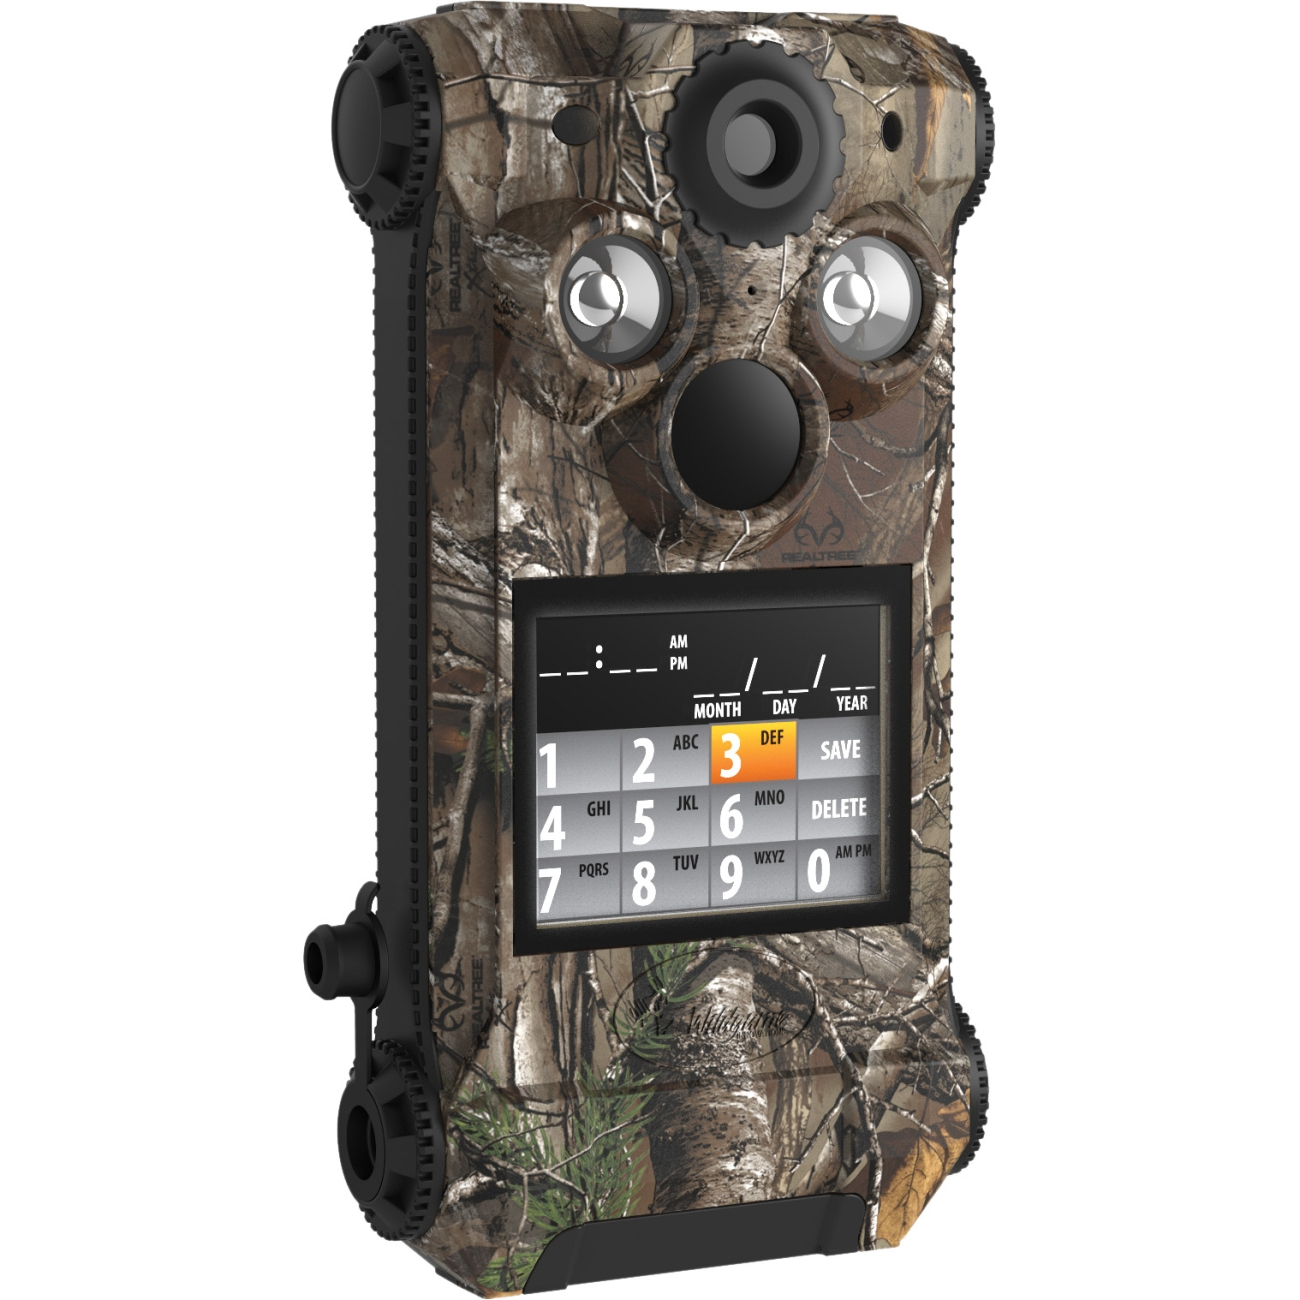 Wildgame Innovations Crush 12 Touch Game Camera, 12 Megapixel